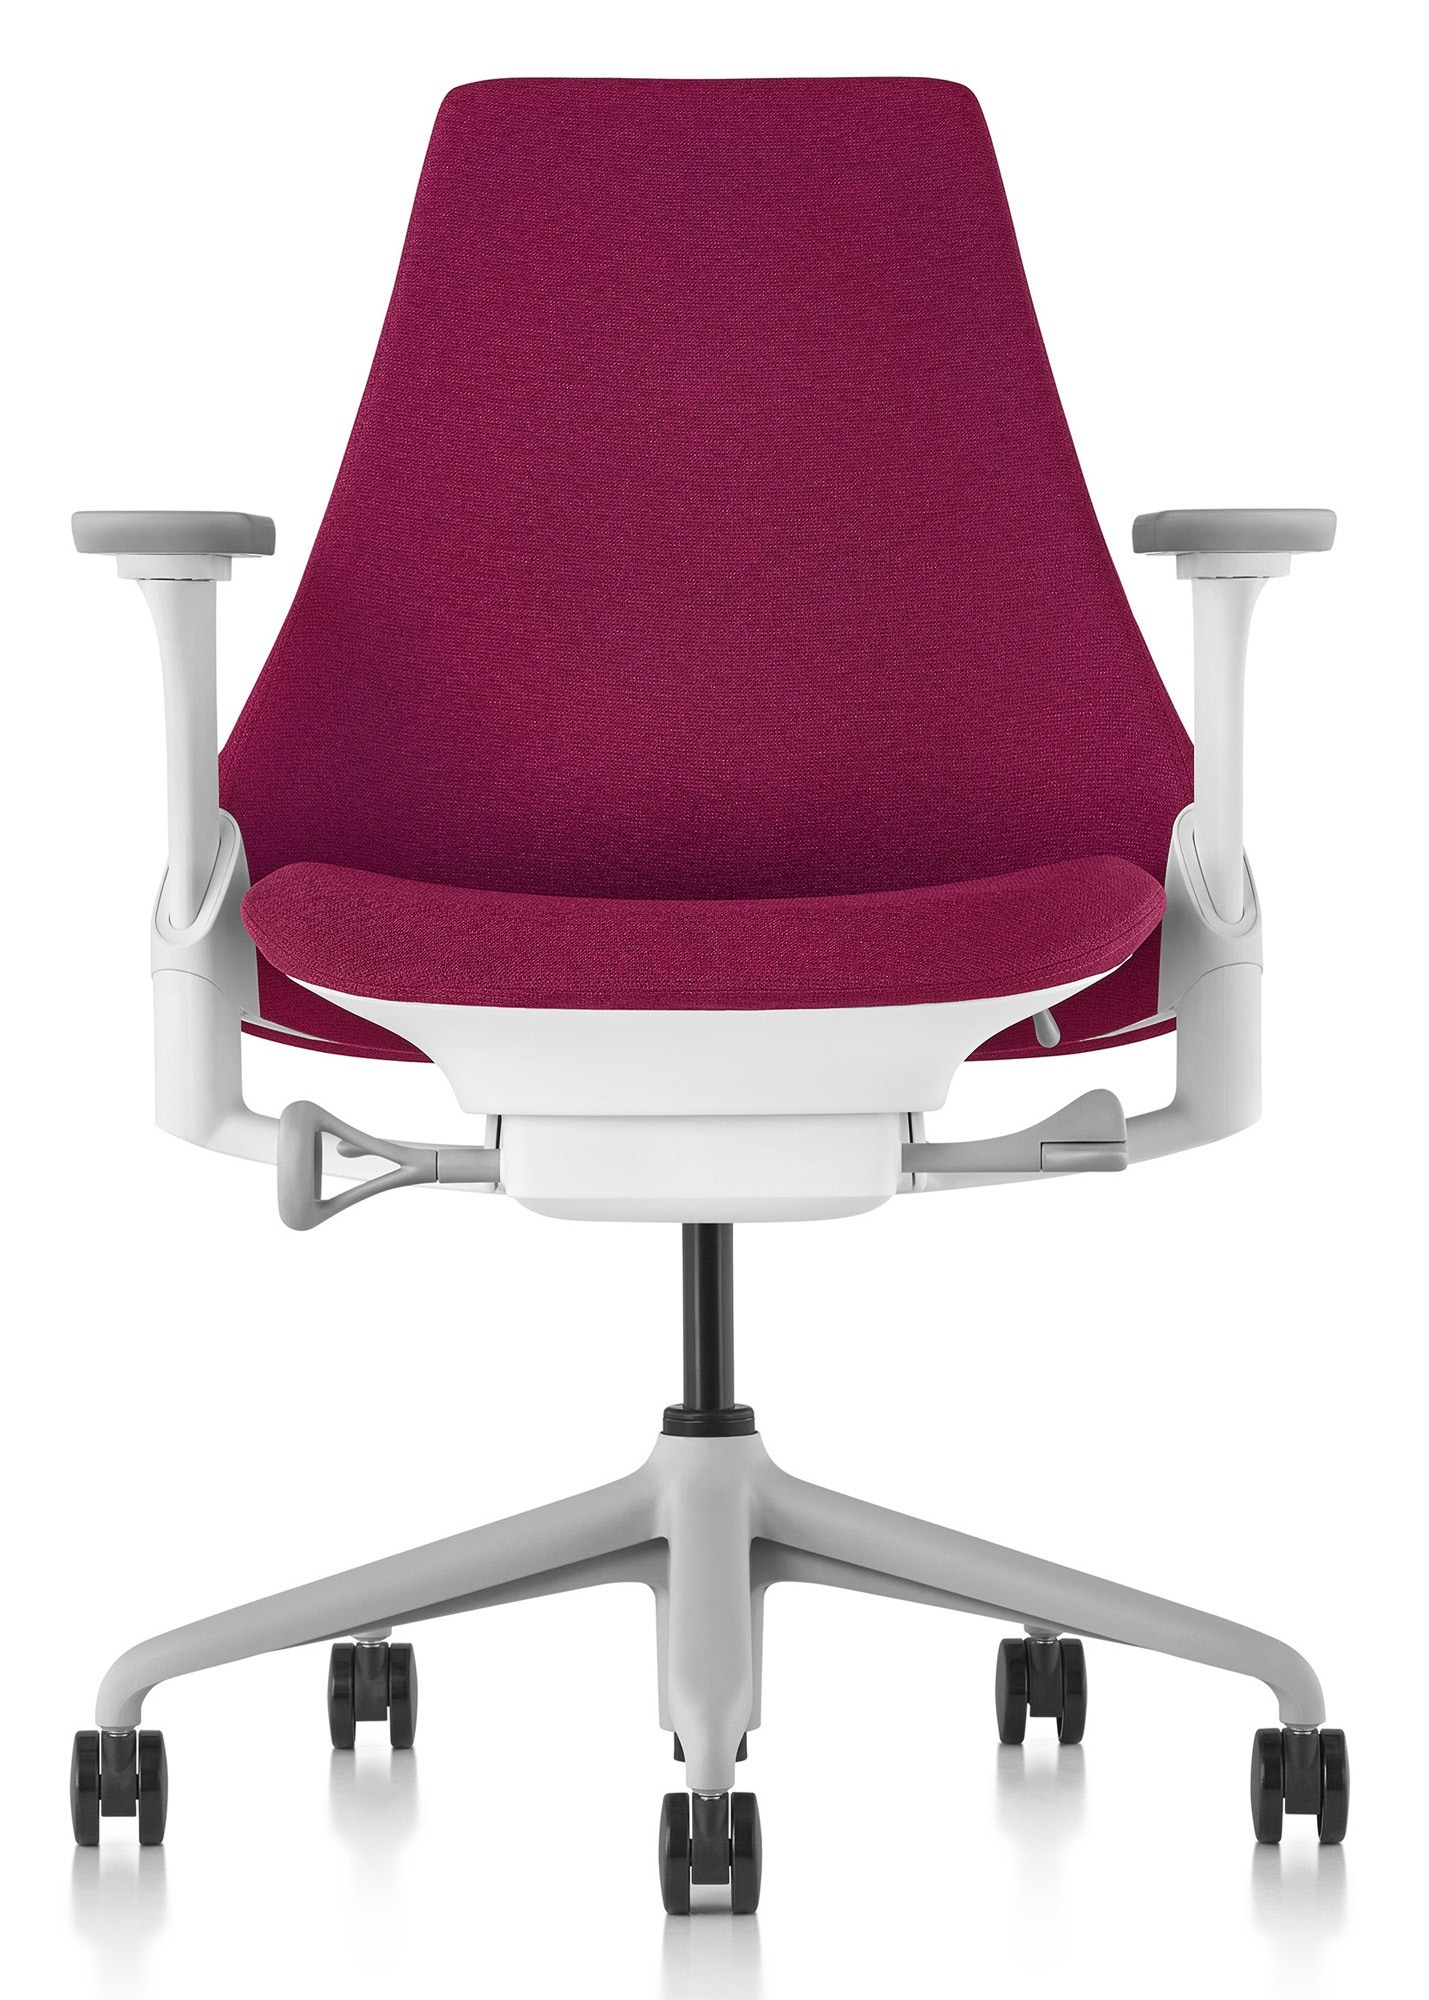 Herman Miller Upholstered Sayl® Chair - Build Your Own